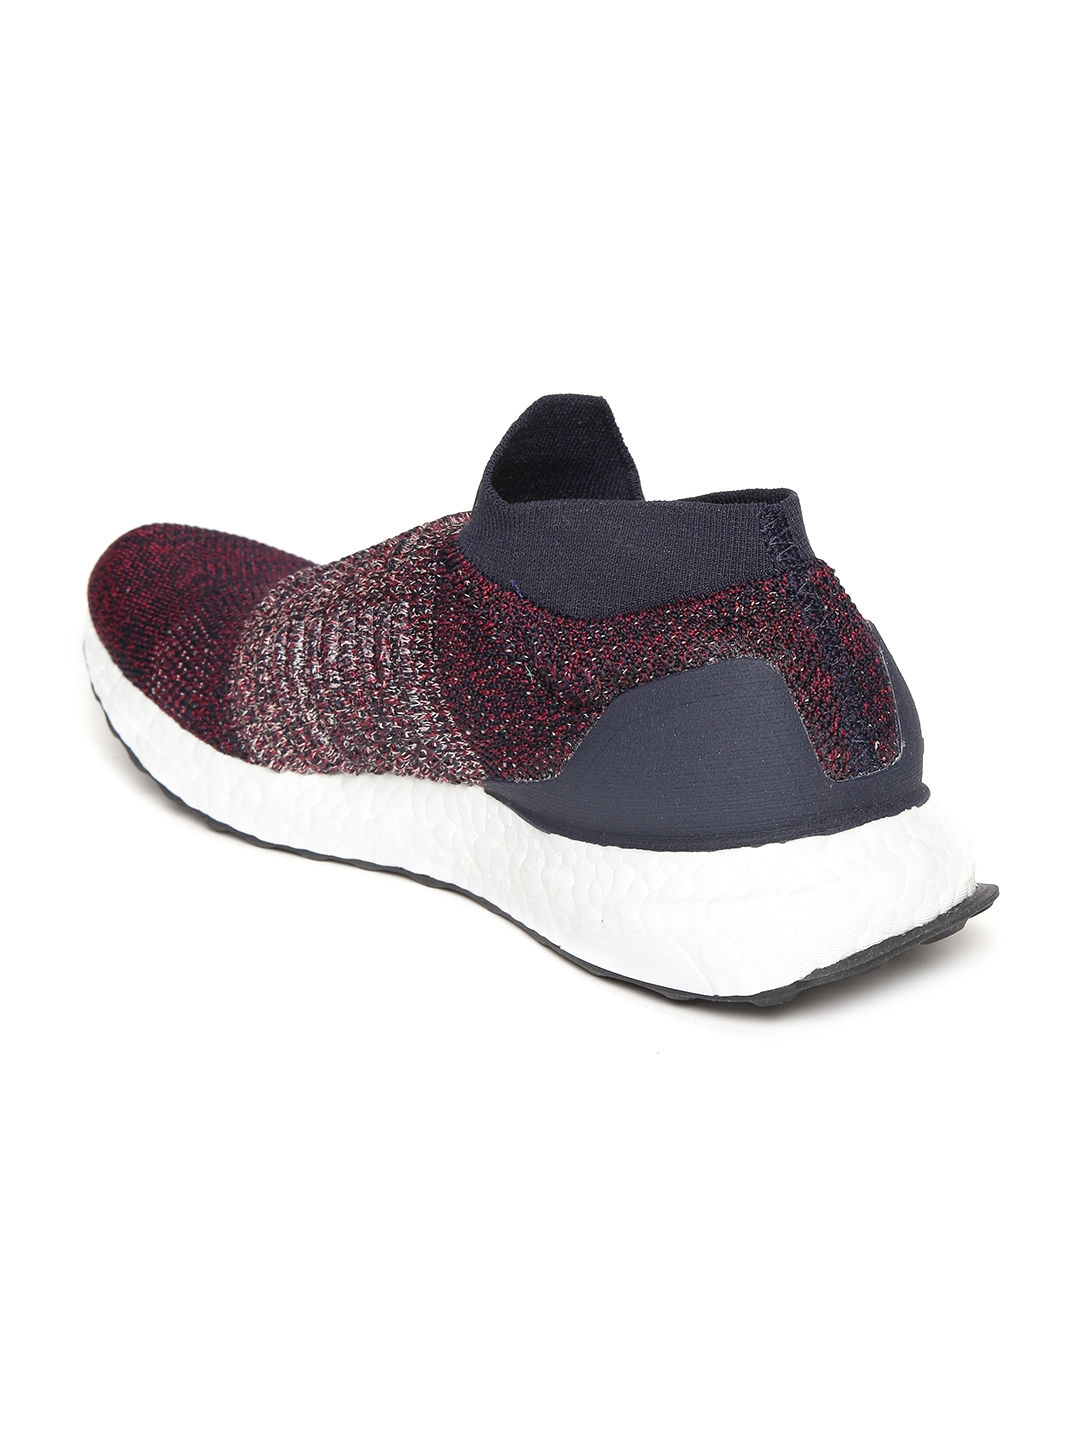 4476e2cb8 Buy ADIDAS Women Burgundy   Navy Ultraboost Laceless Running Shoes ...